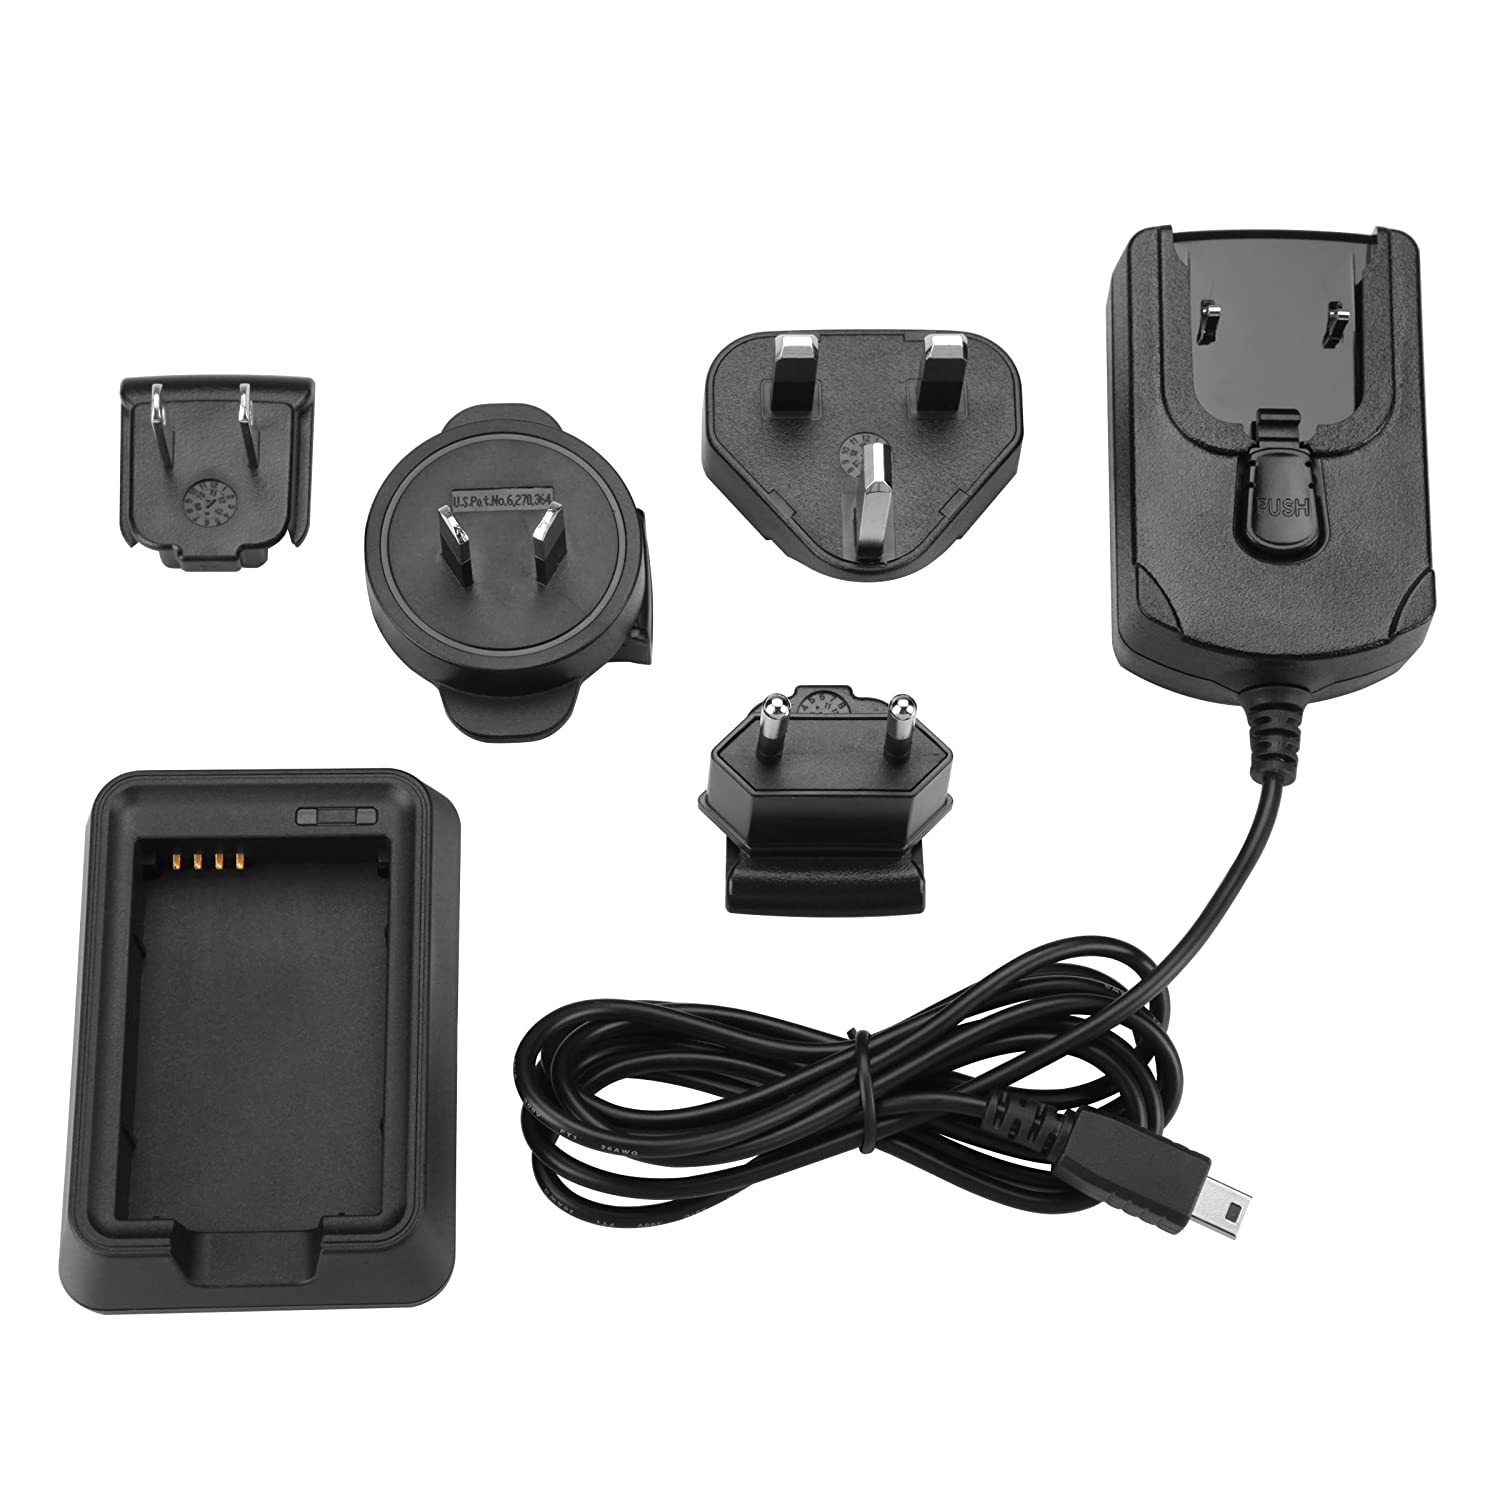 Cargador Garmin 010-11921-06 Negro, Outdoor Battery Charger, I/ón de Litio